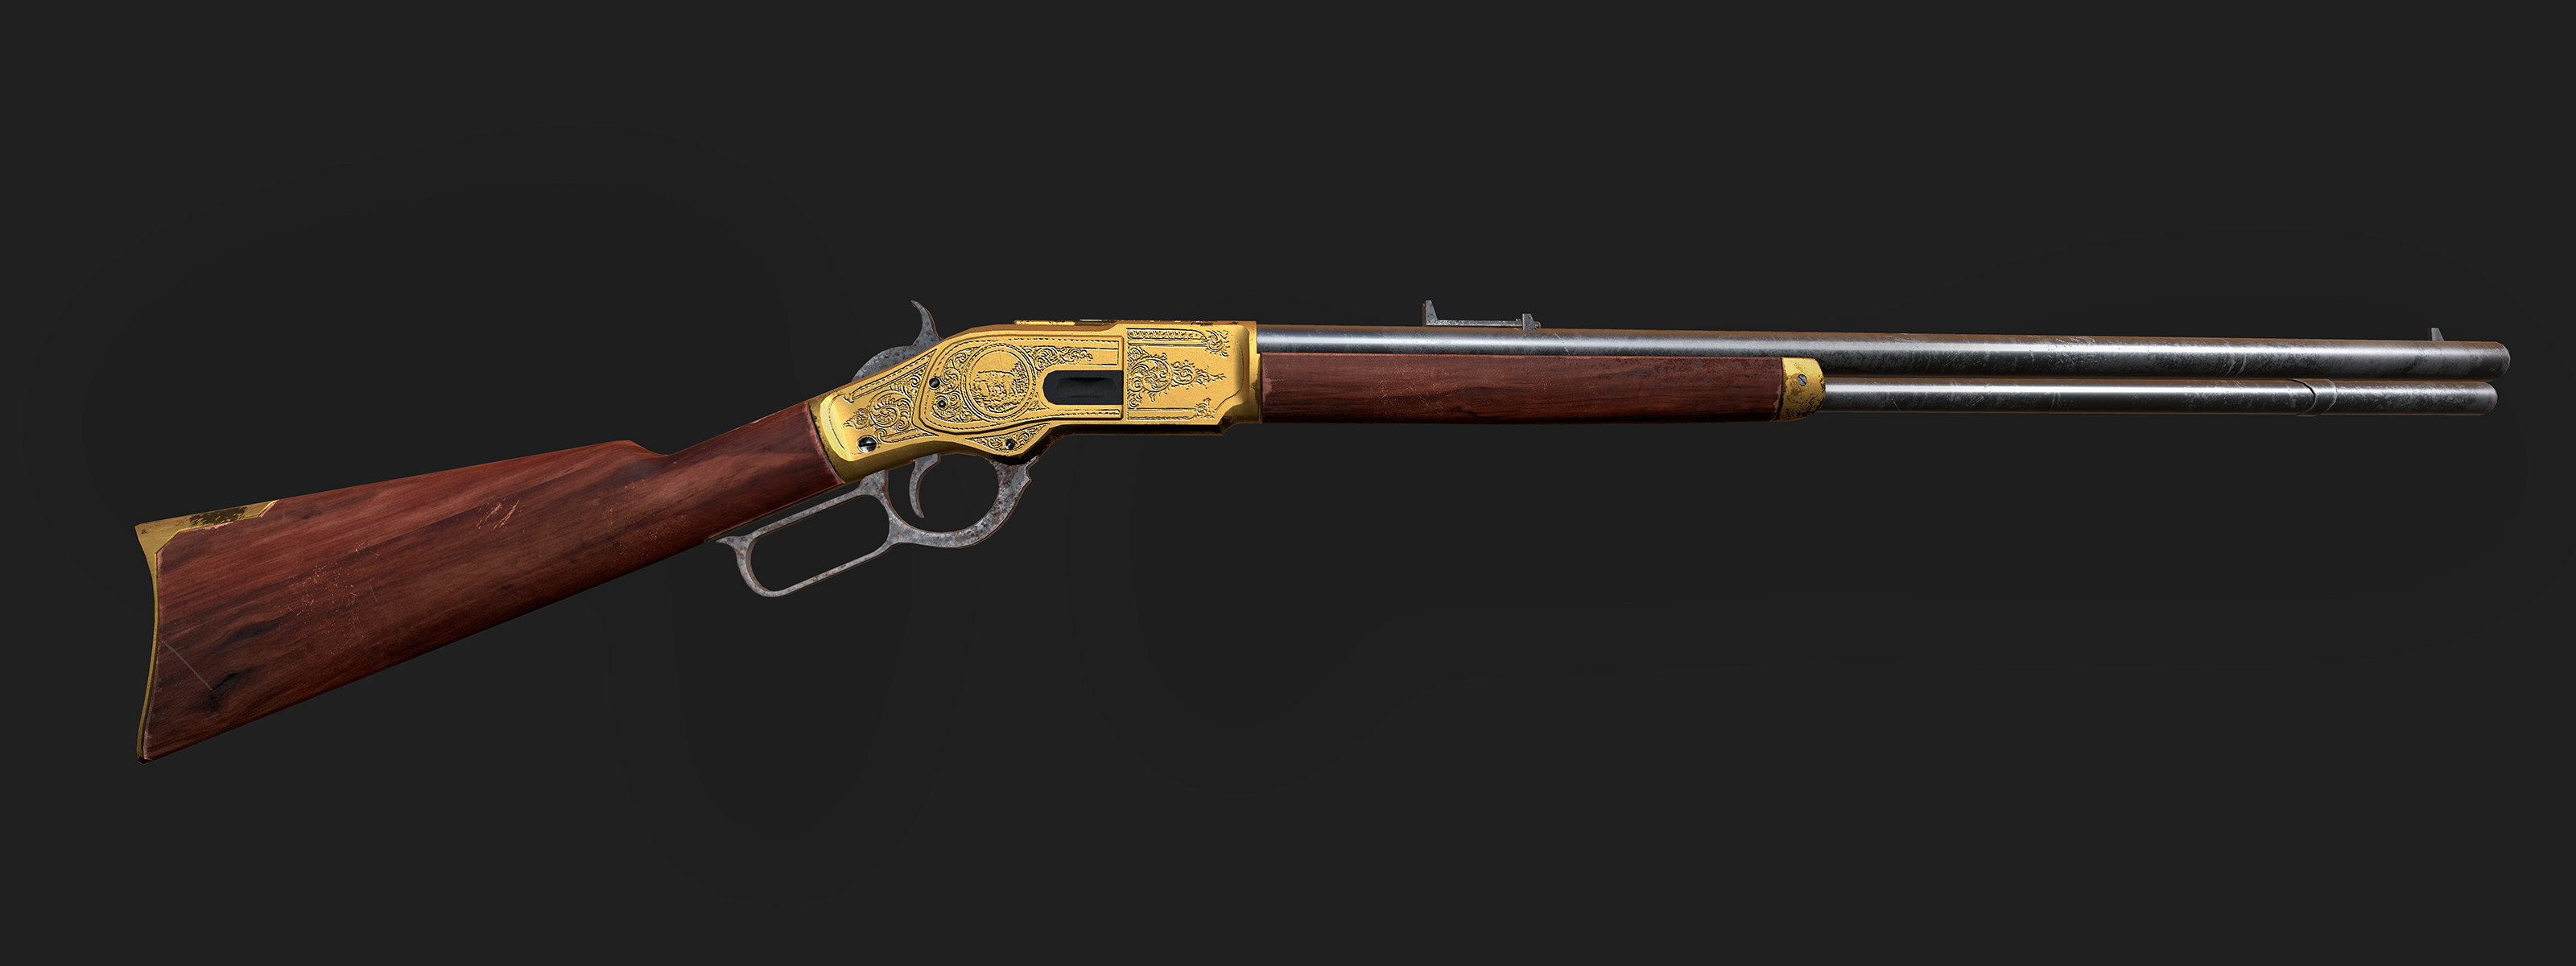 A closeup render of the rifle. That I've modeled and rendered